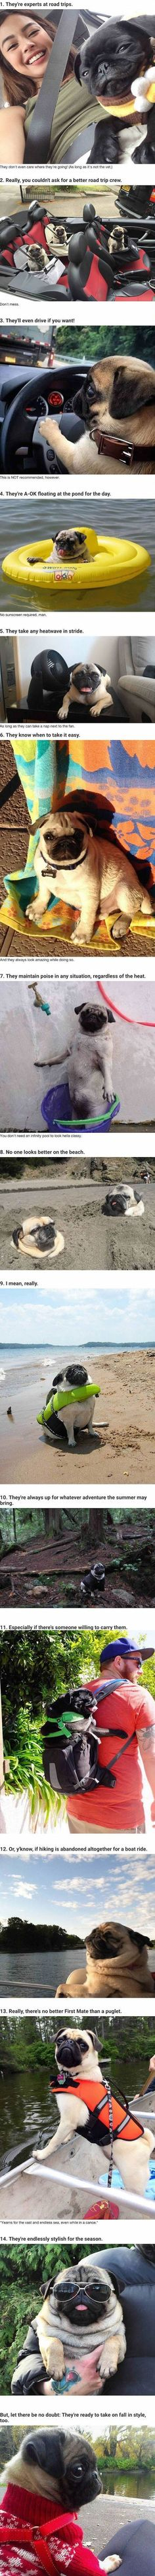 14 Reasons Pugs Are The Ultimate Experts In Summer Living #pug